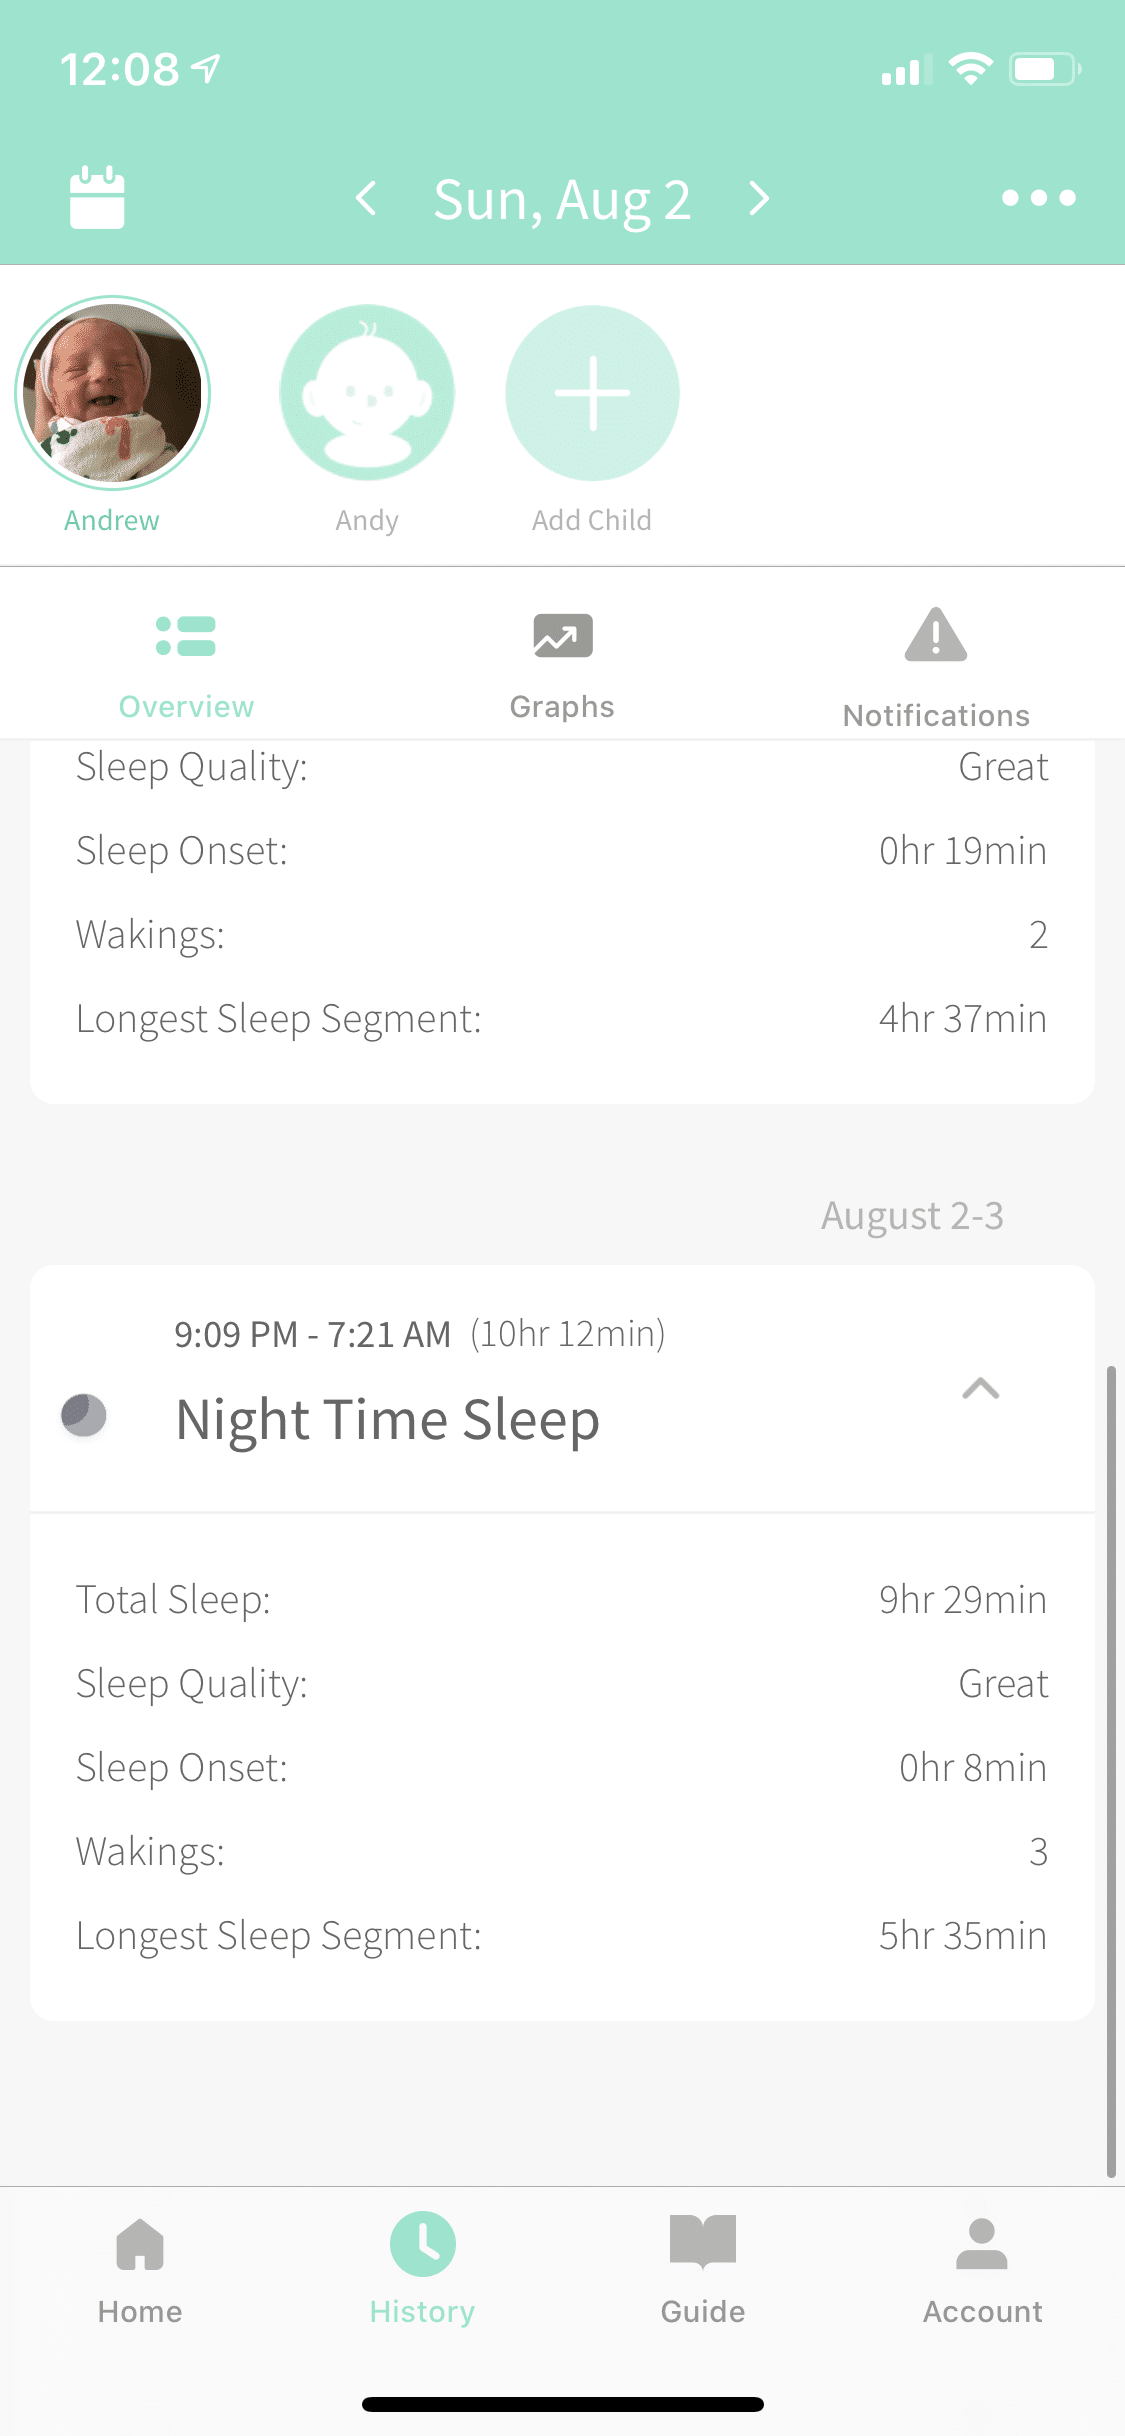 dreamland sleep results